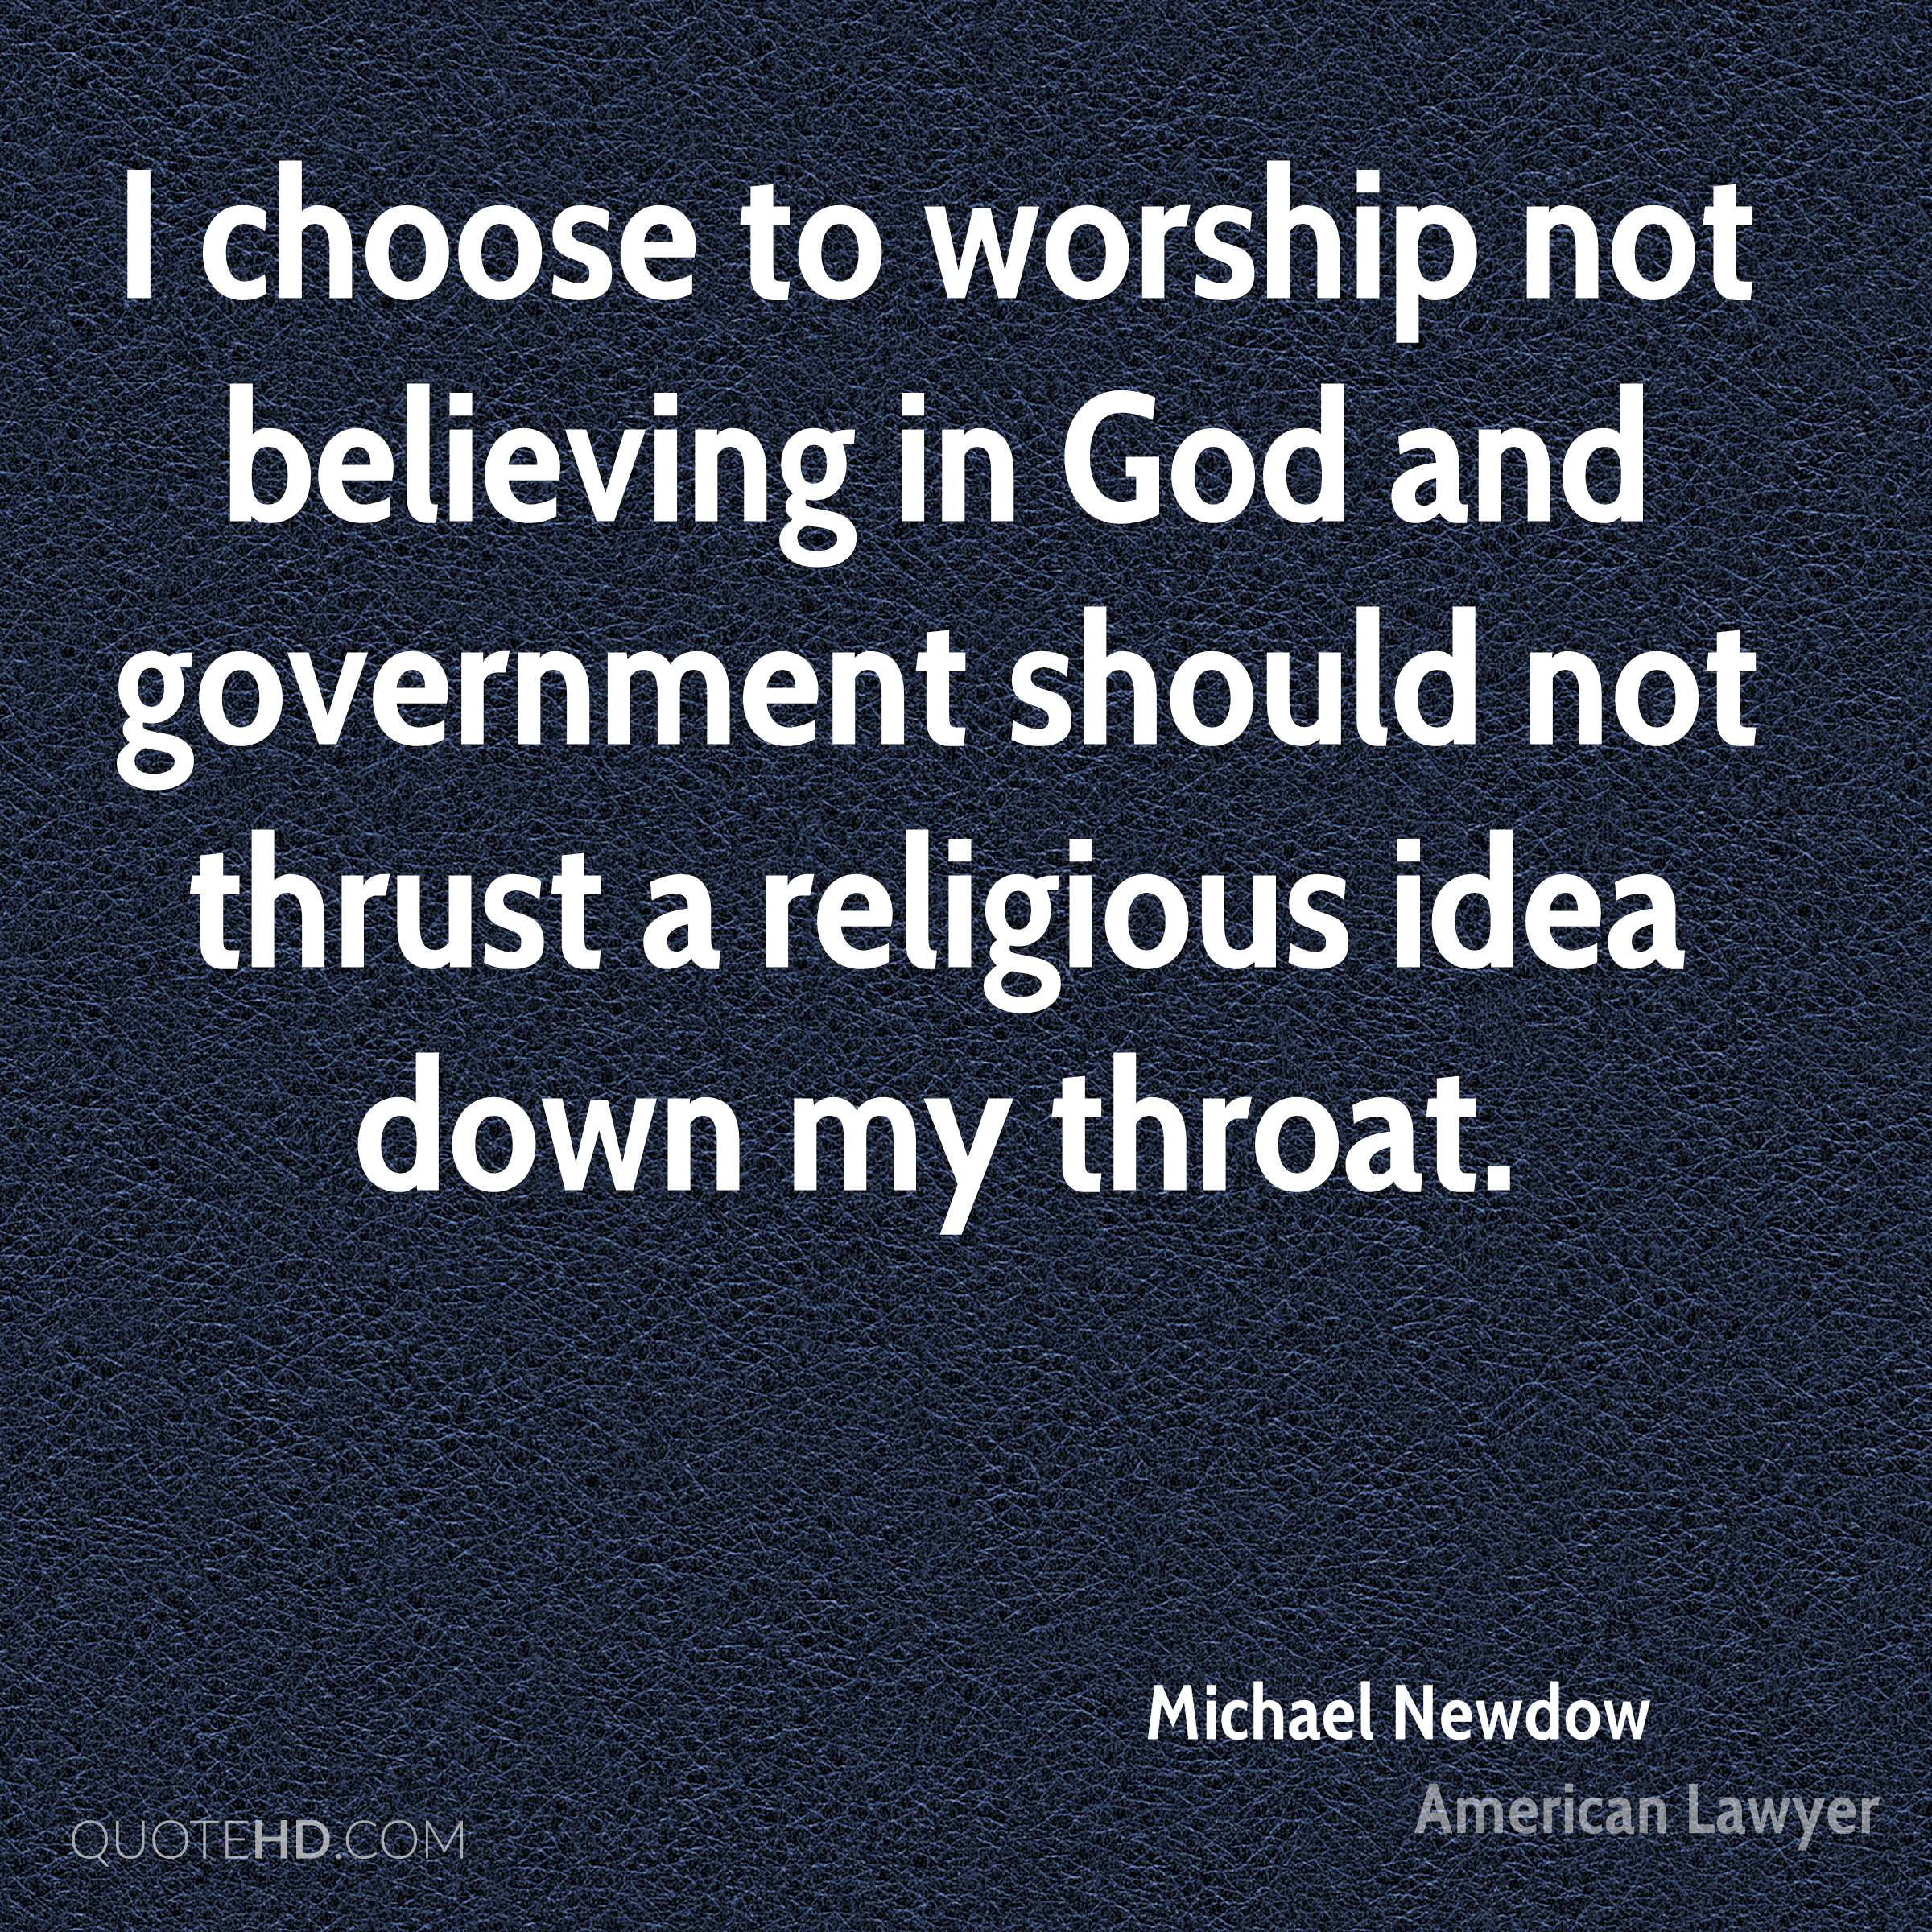 I choose to worship not believing in God and government should not thrust a religious idea down my throat.